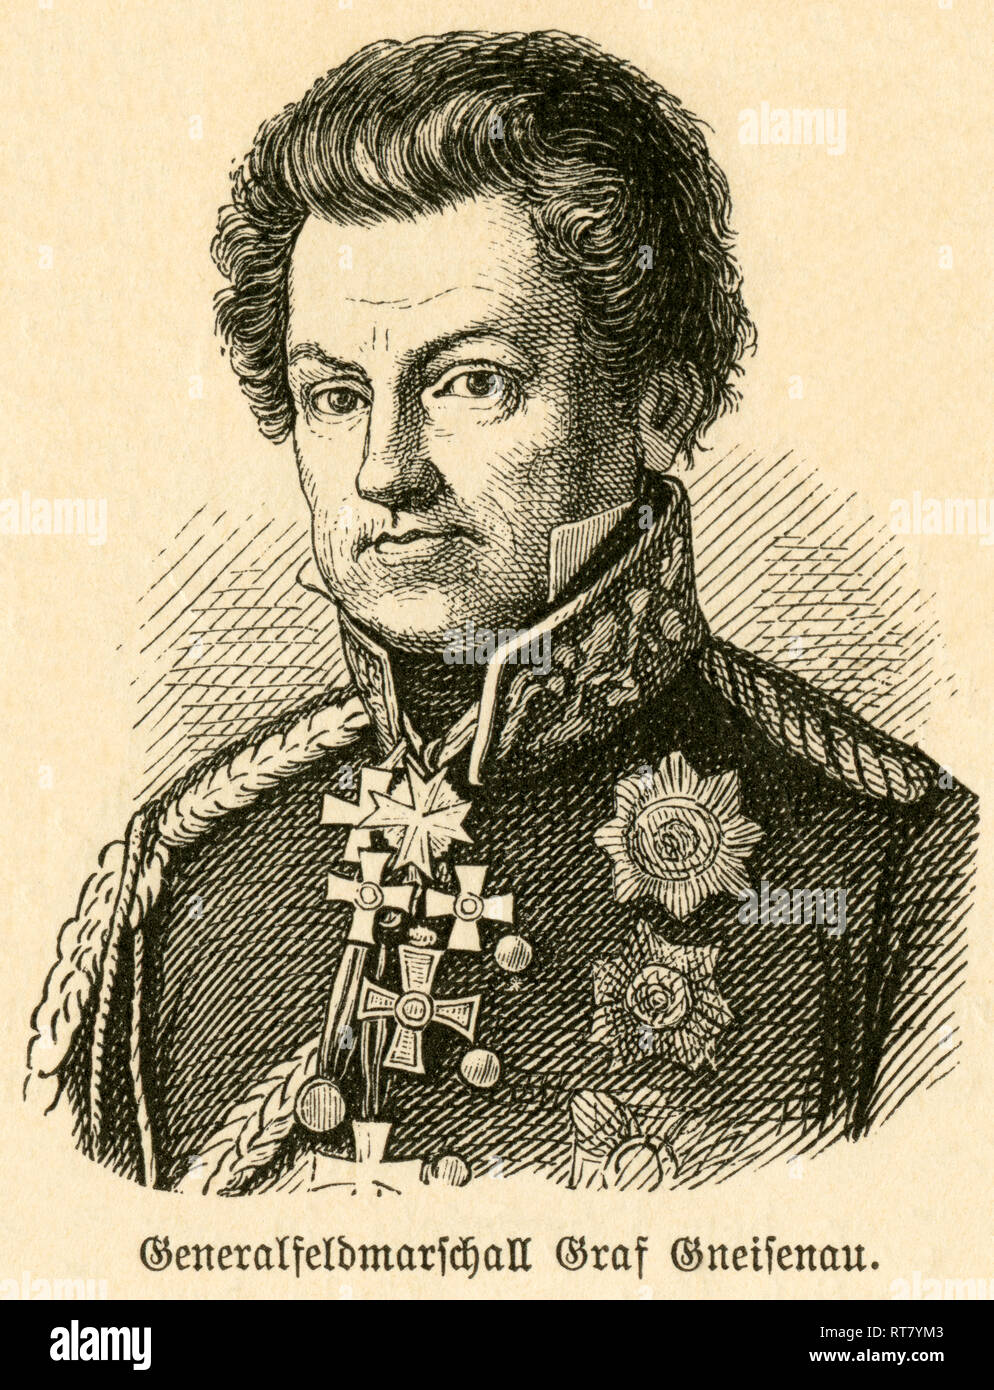 August Neidhardt von Gneisenau, Prussian field marshal, portrait from: 'Deutschlands Heerführer' (German military leader), 1640-1894, portrayed by Sprößer, publishing house Hirt and son, Leipzig, 1895., Additional-Rights-Clearance-Info-Not-Available - Stock Image